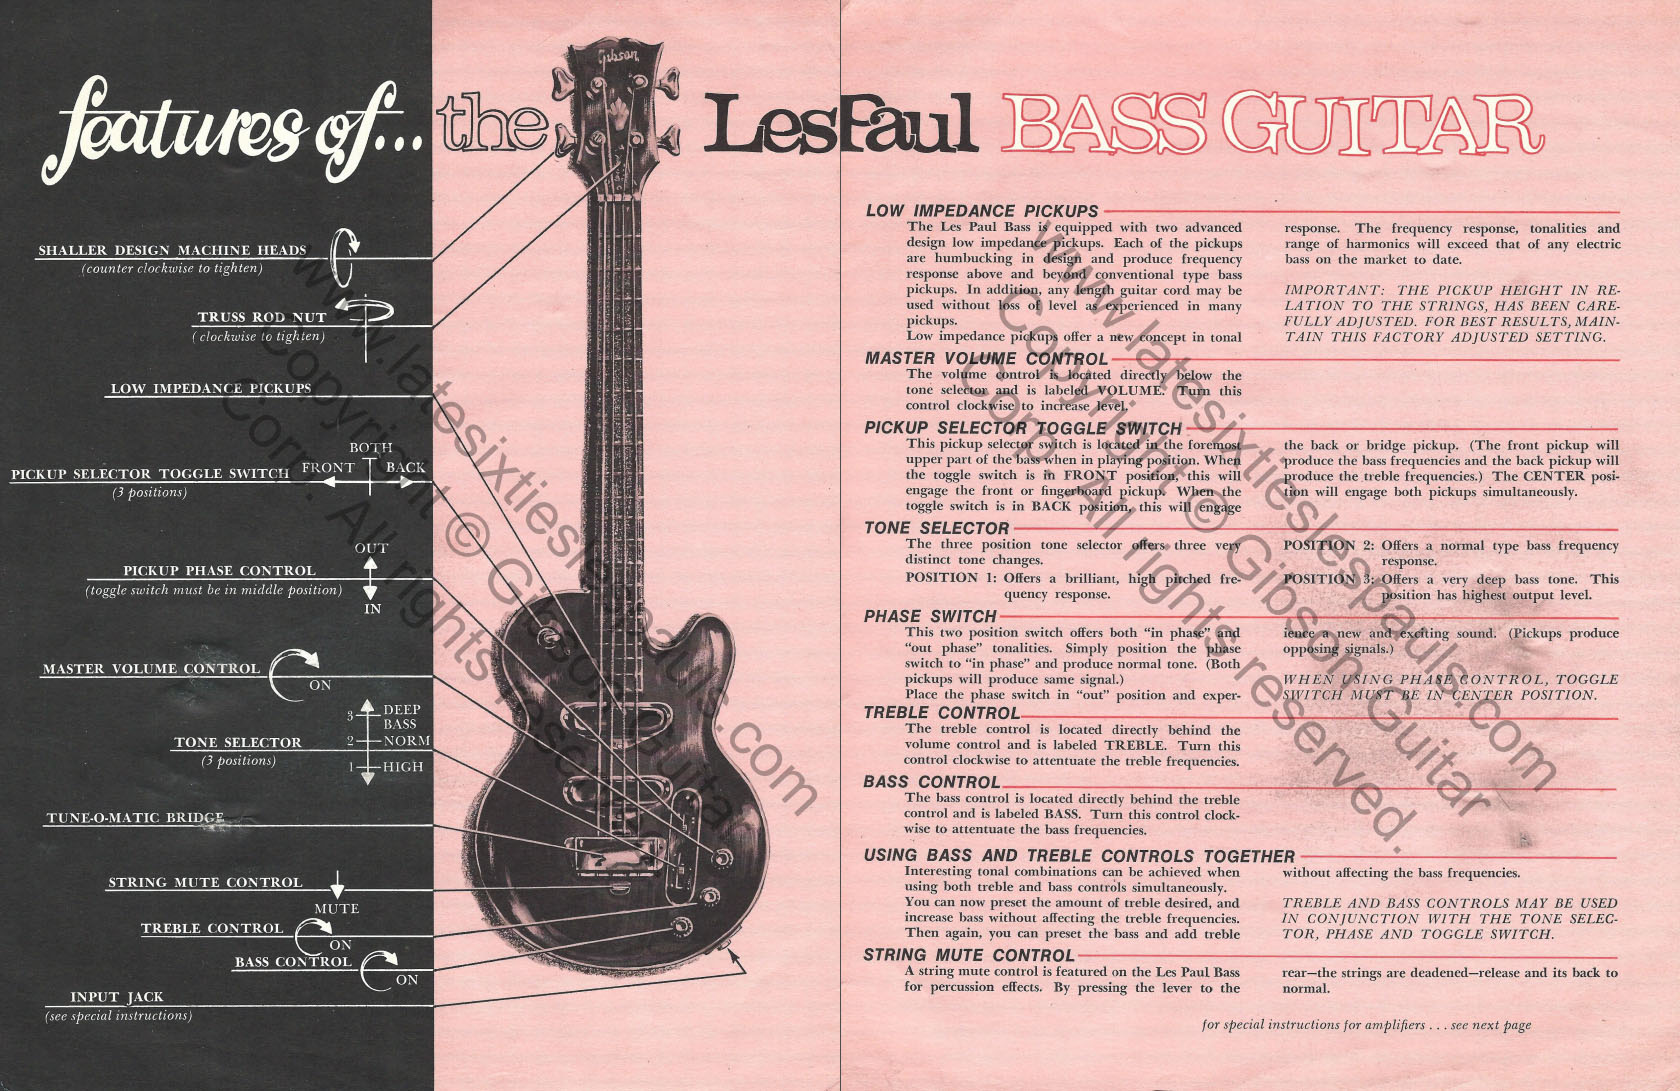 1968 Les Paul and 1969 Les Paul Serial Number Information